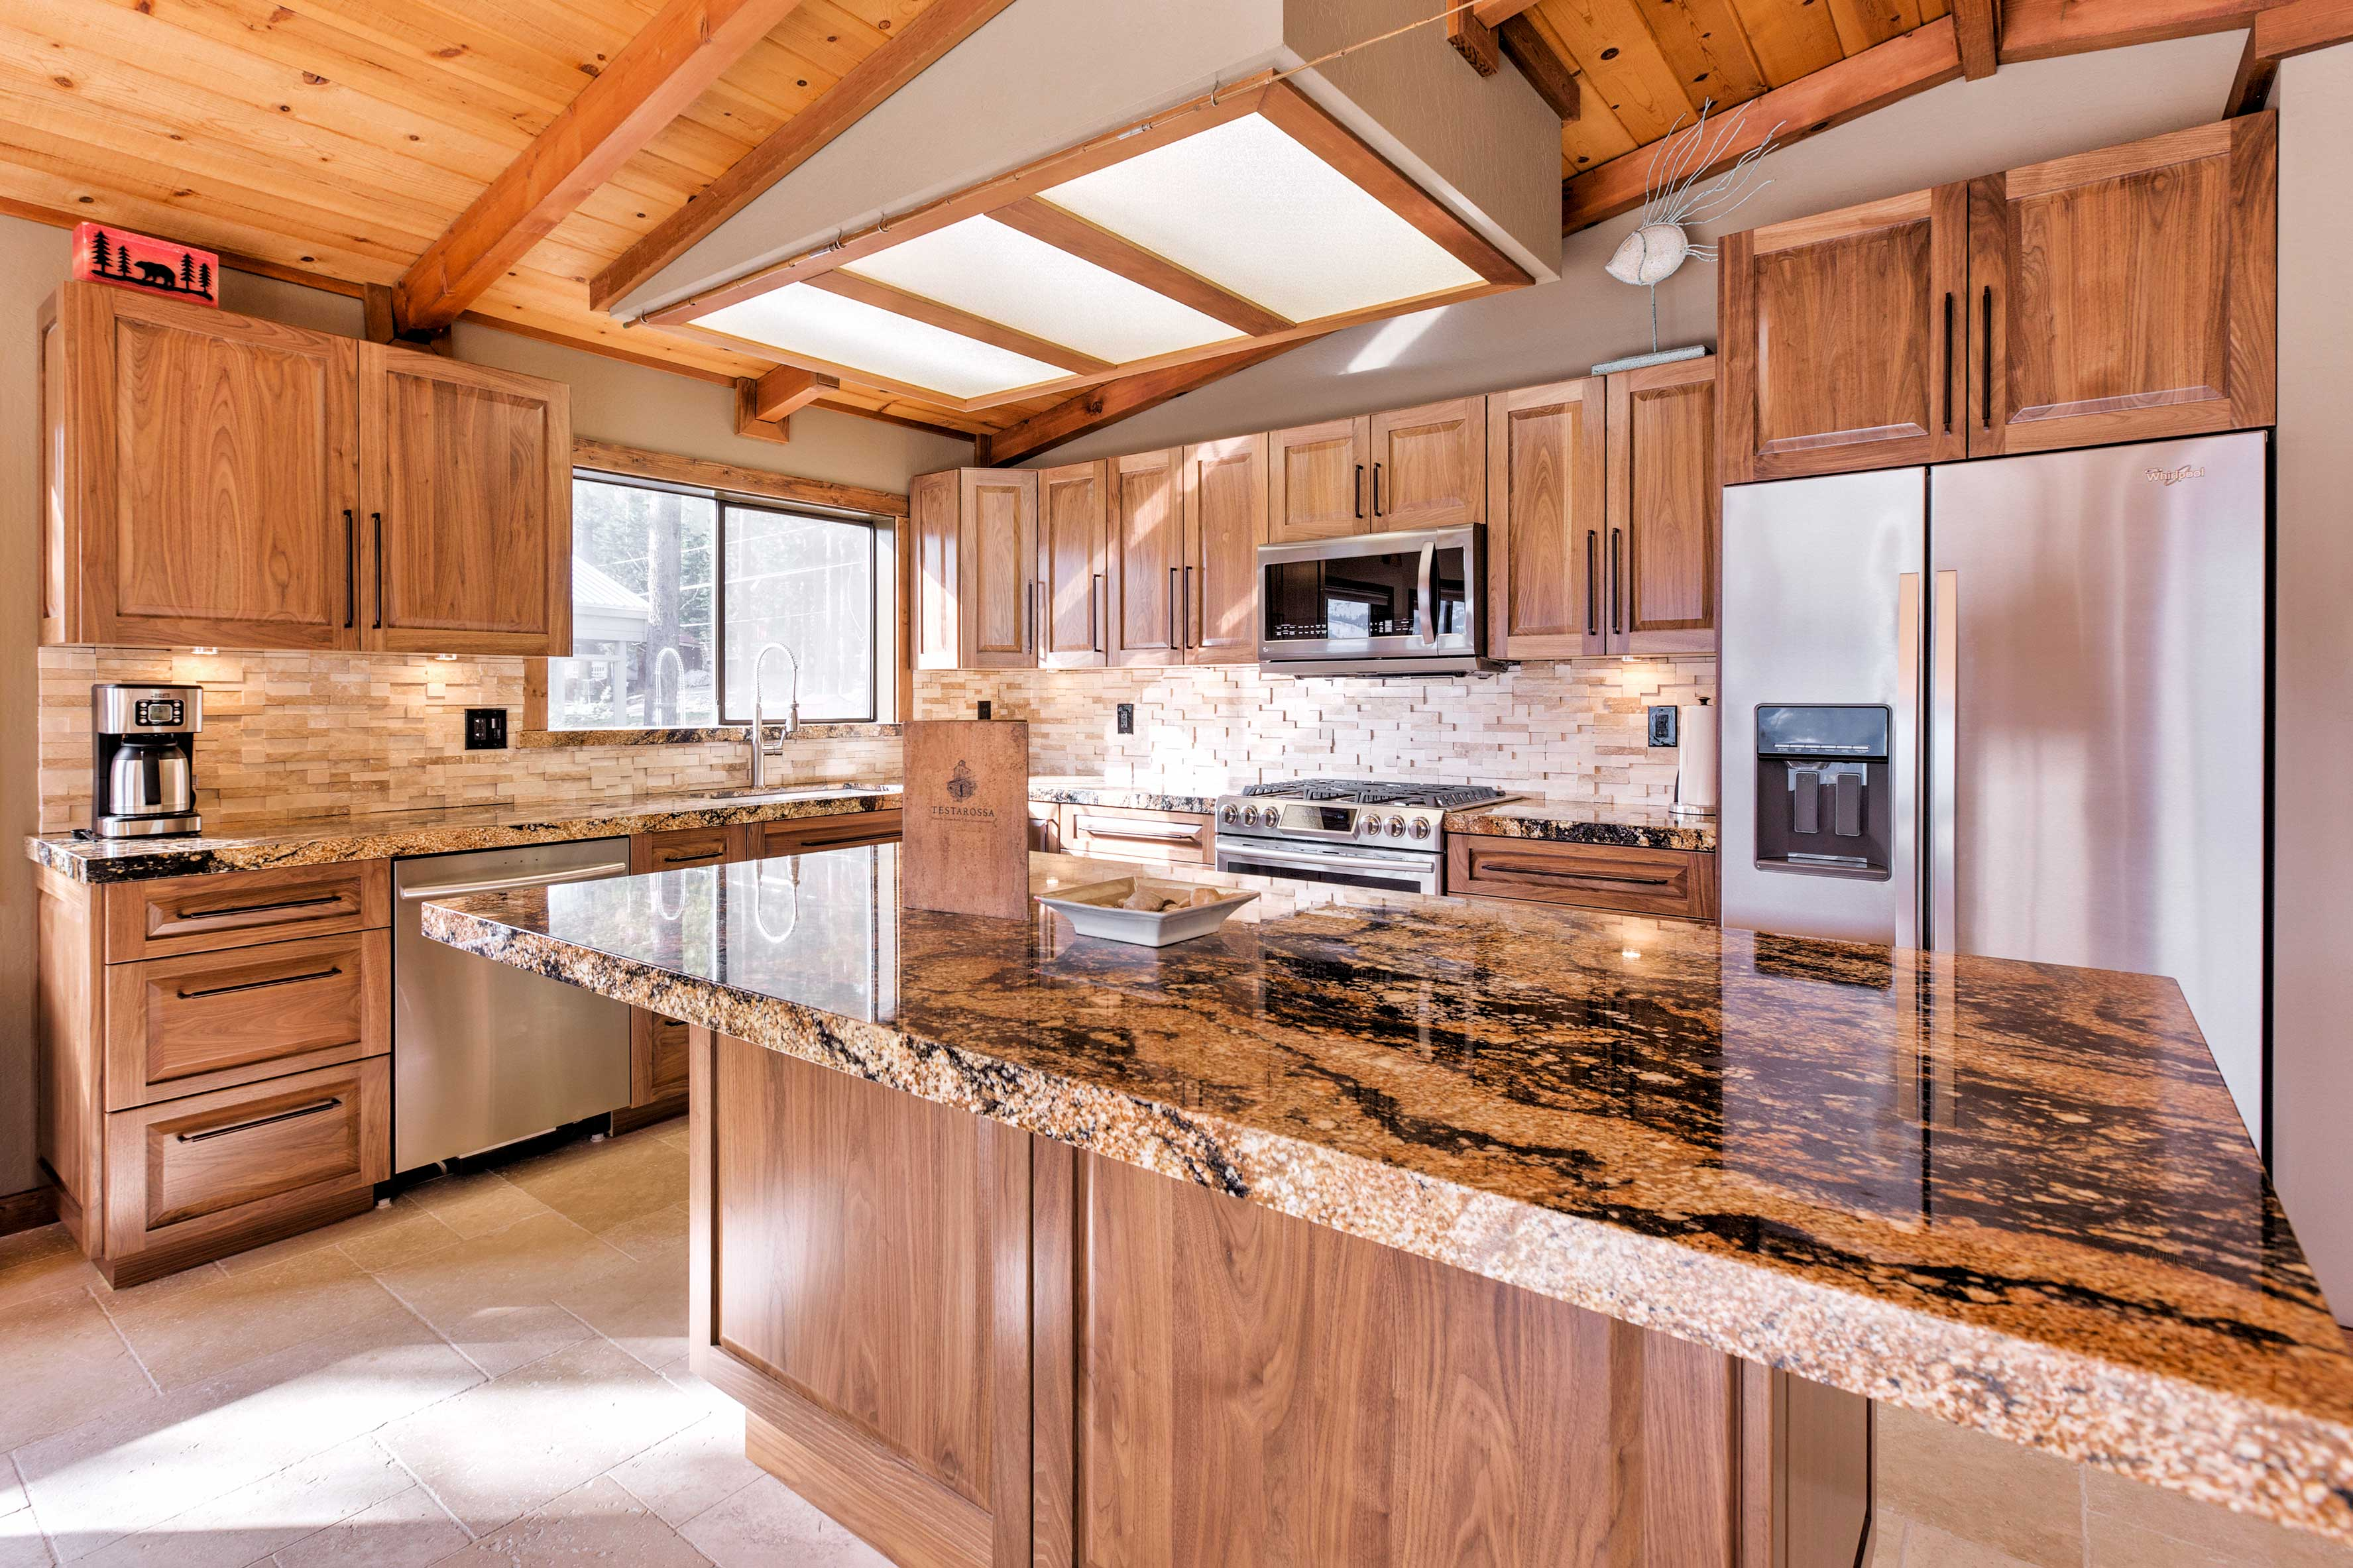 The fully equipped kitchen has granite counters and stainless steel appliances!